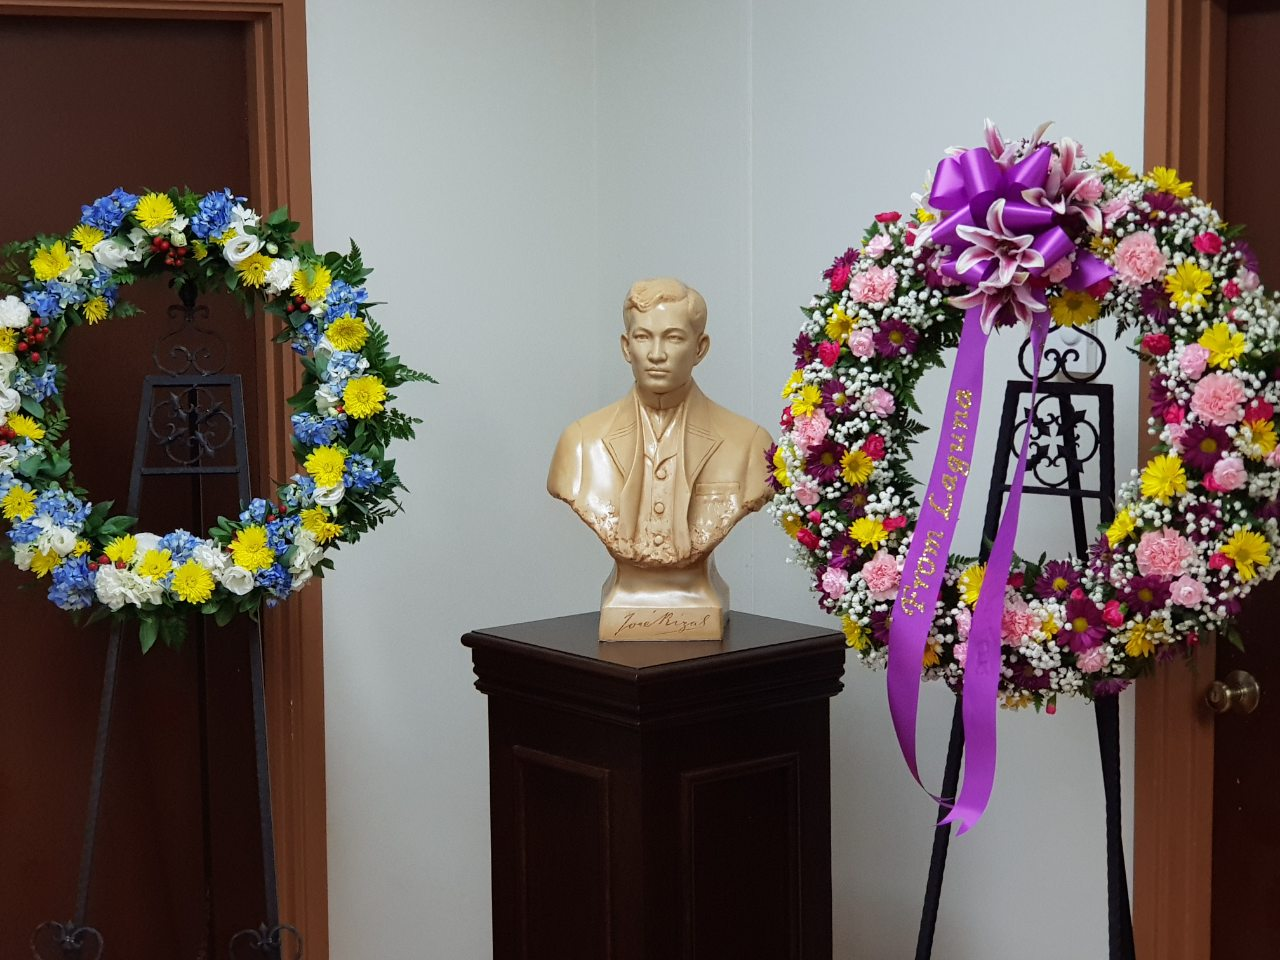 Phl Consulate General In Agana Guam Commemorates 123rd Anniversary Of Rizal Martyrdom Phinagana